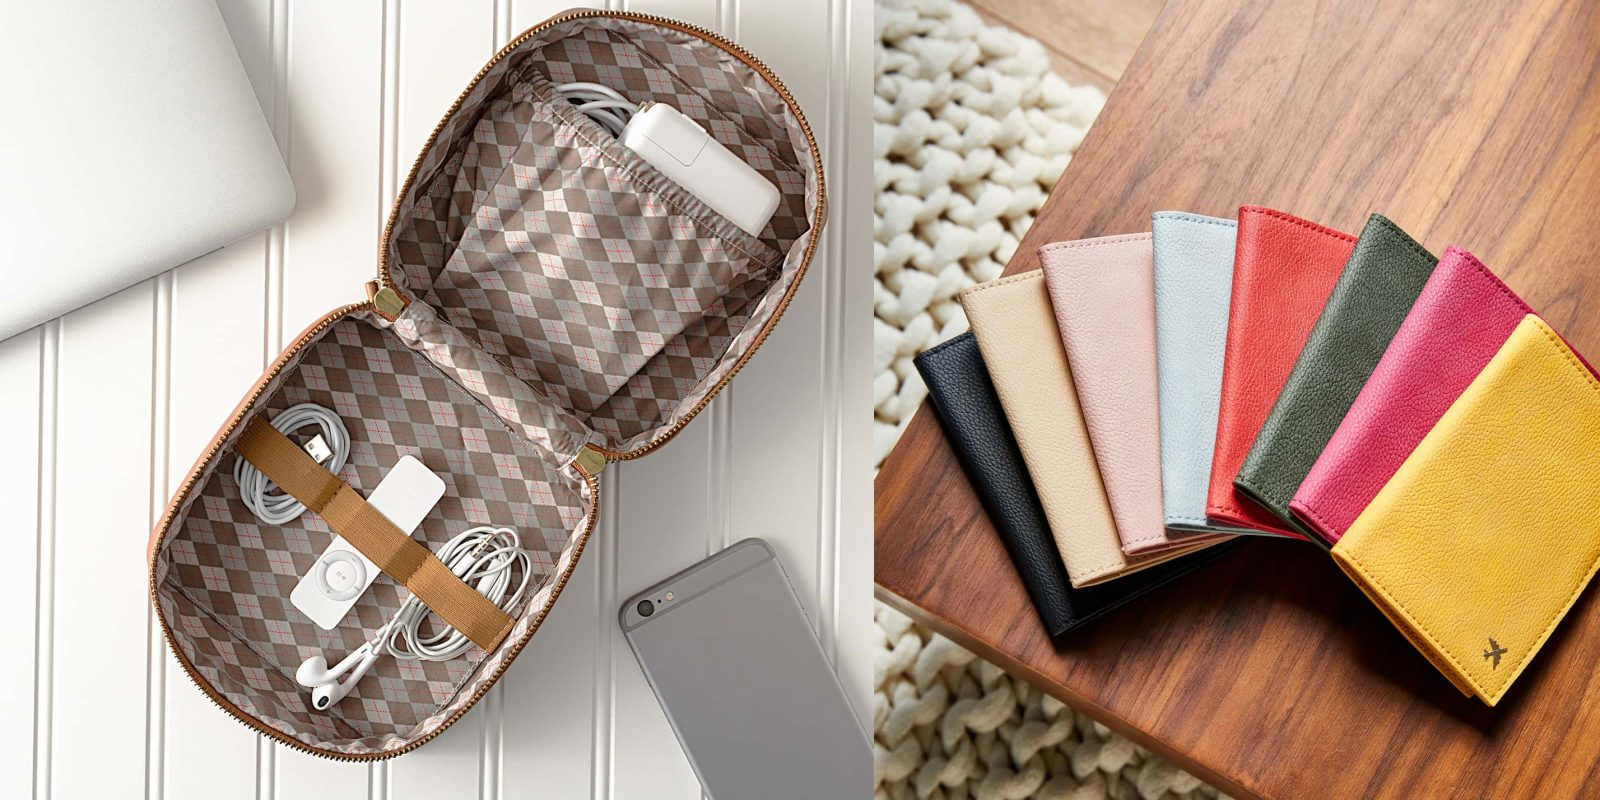 d3ebf3eef26 Nordstrom s line of travel accessories will have you ready for any spring  break trip